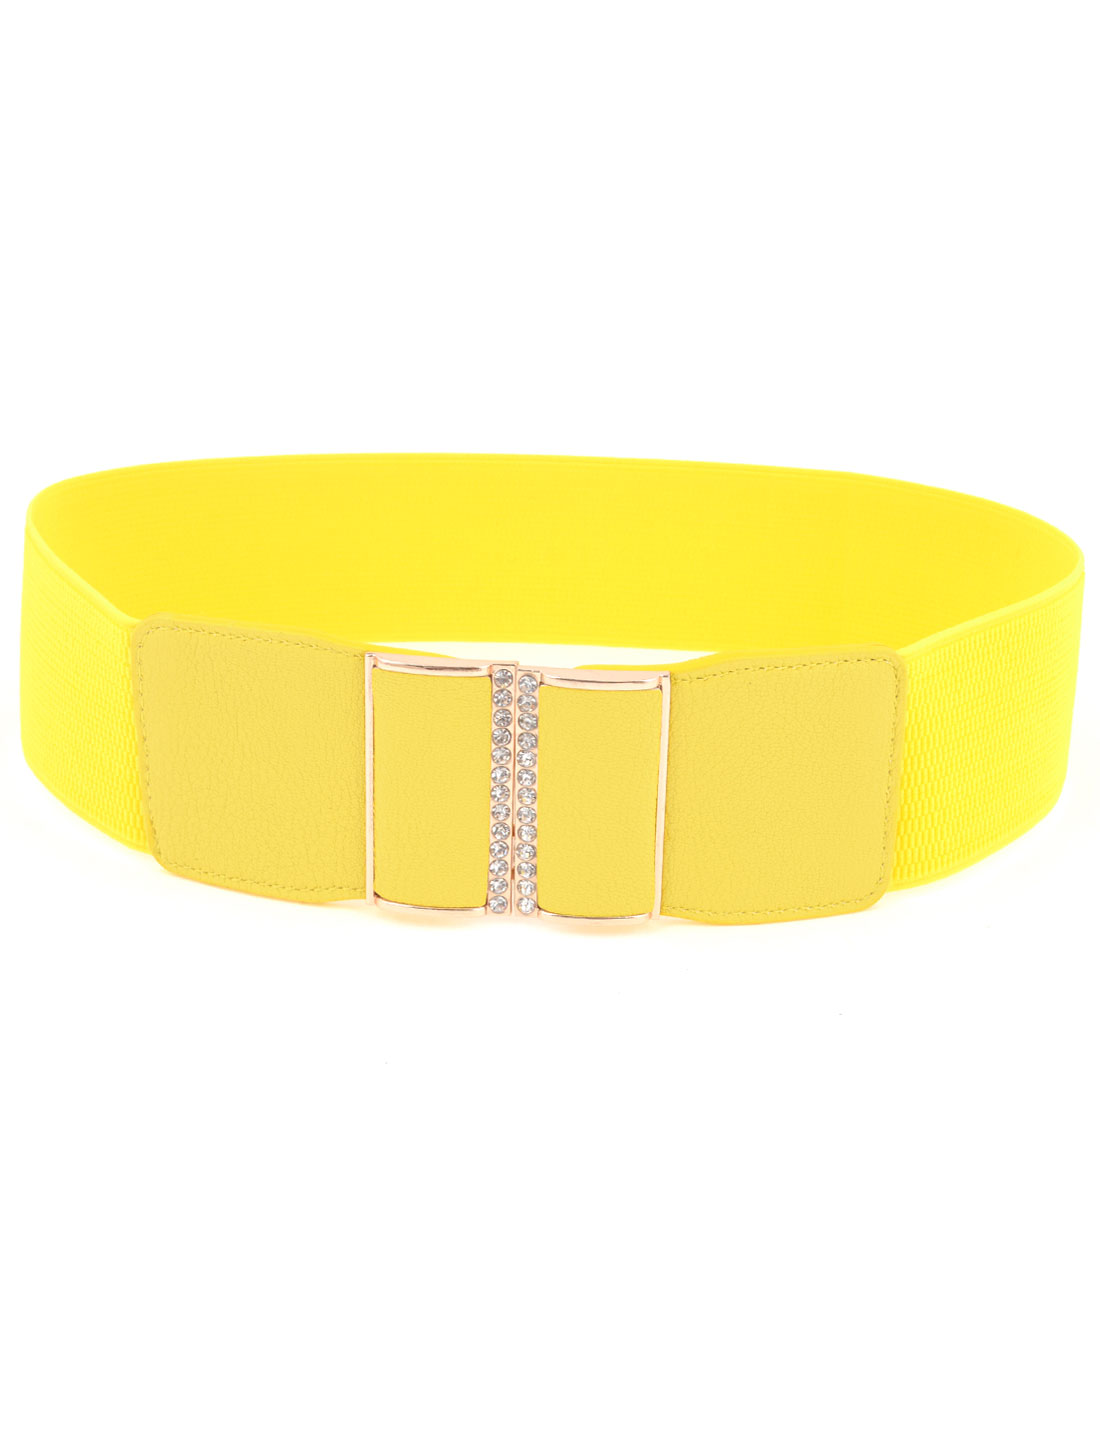 Women Yellow Faux Leather Buckle Part Textured Stretch Waistband Cinch Belt